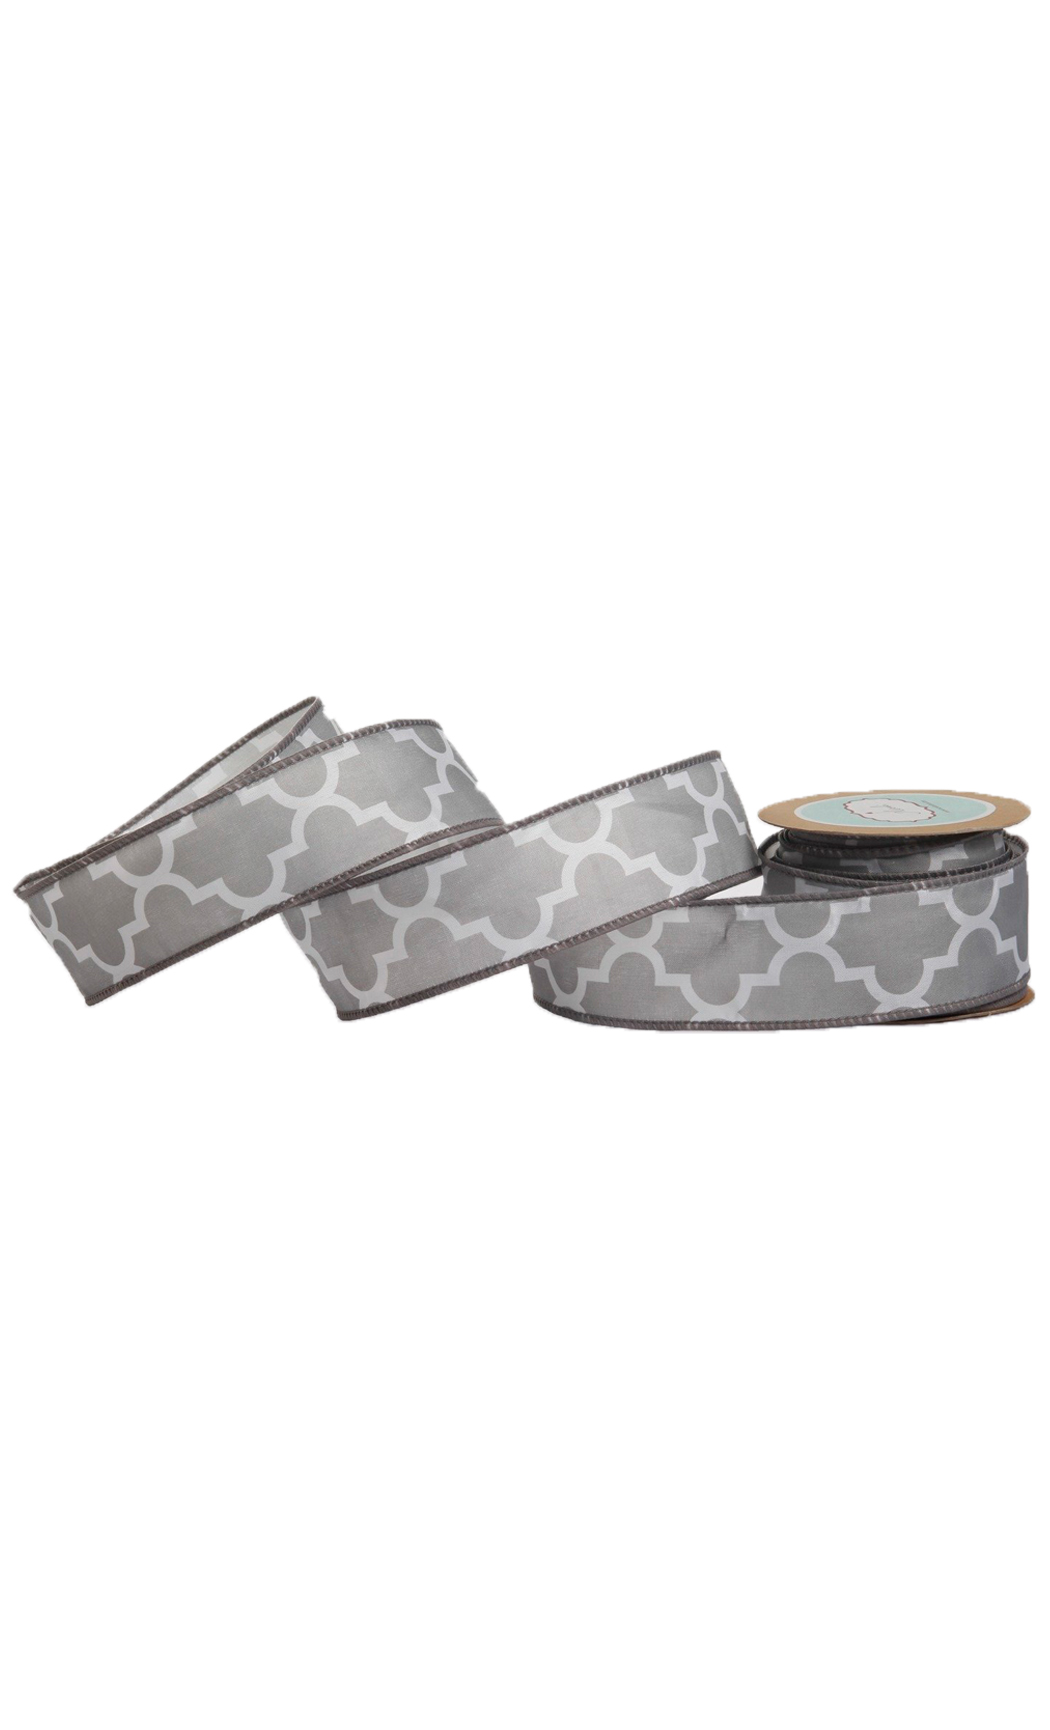 Grey Tile Pattern Nylon Ribbon - Buy Online